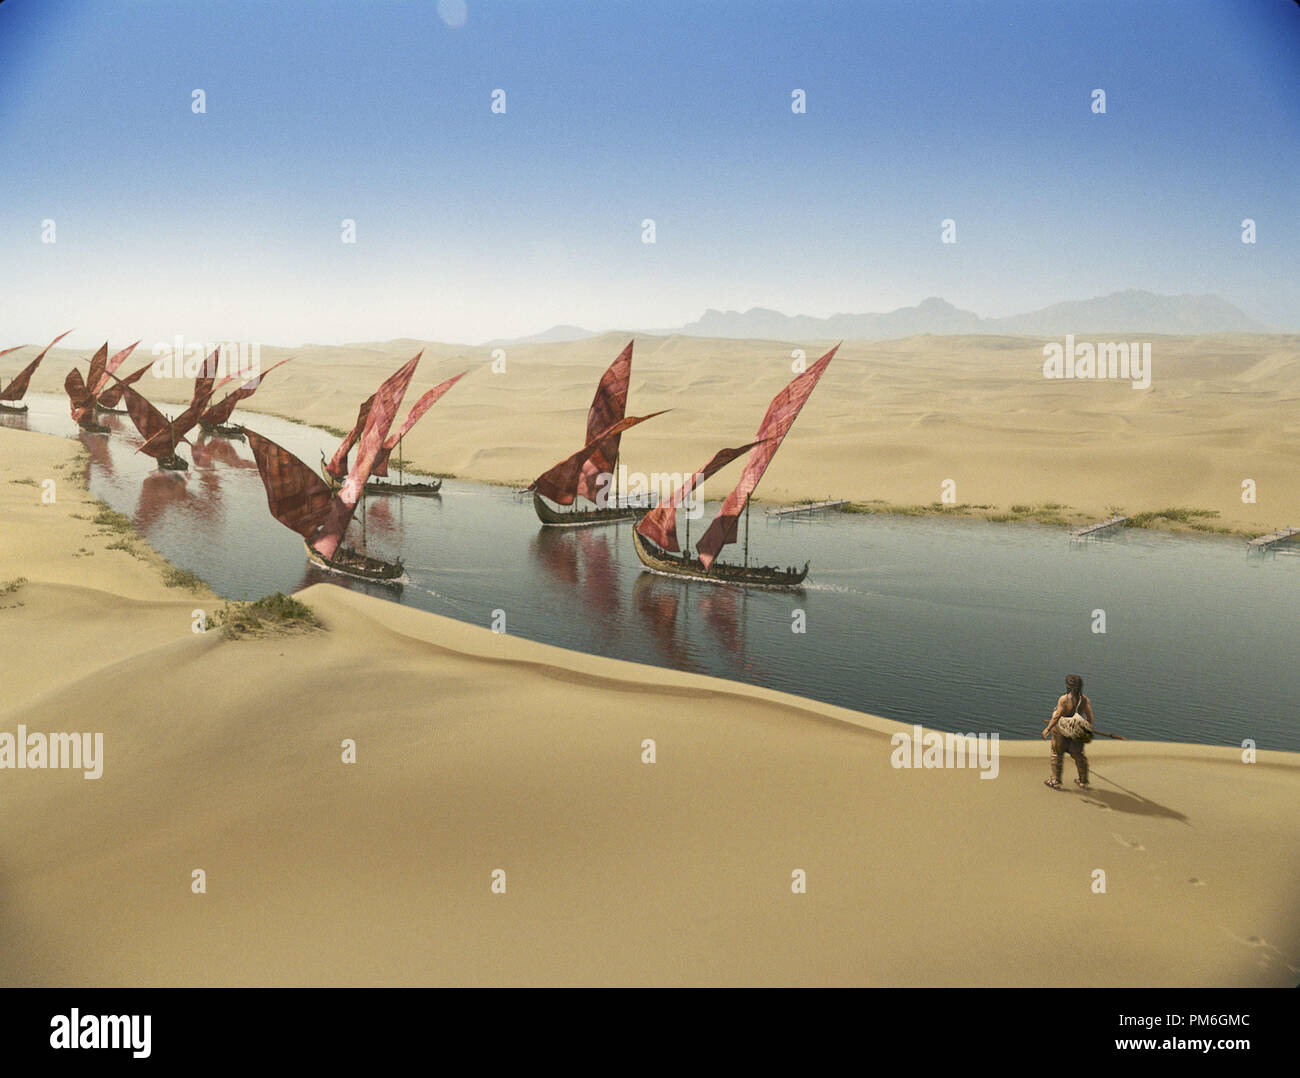 10 000 Bc Film High Resolution Stock Photography And Images Alamy